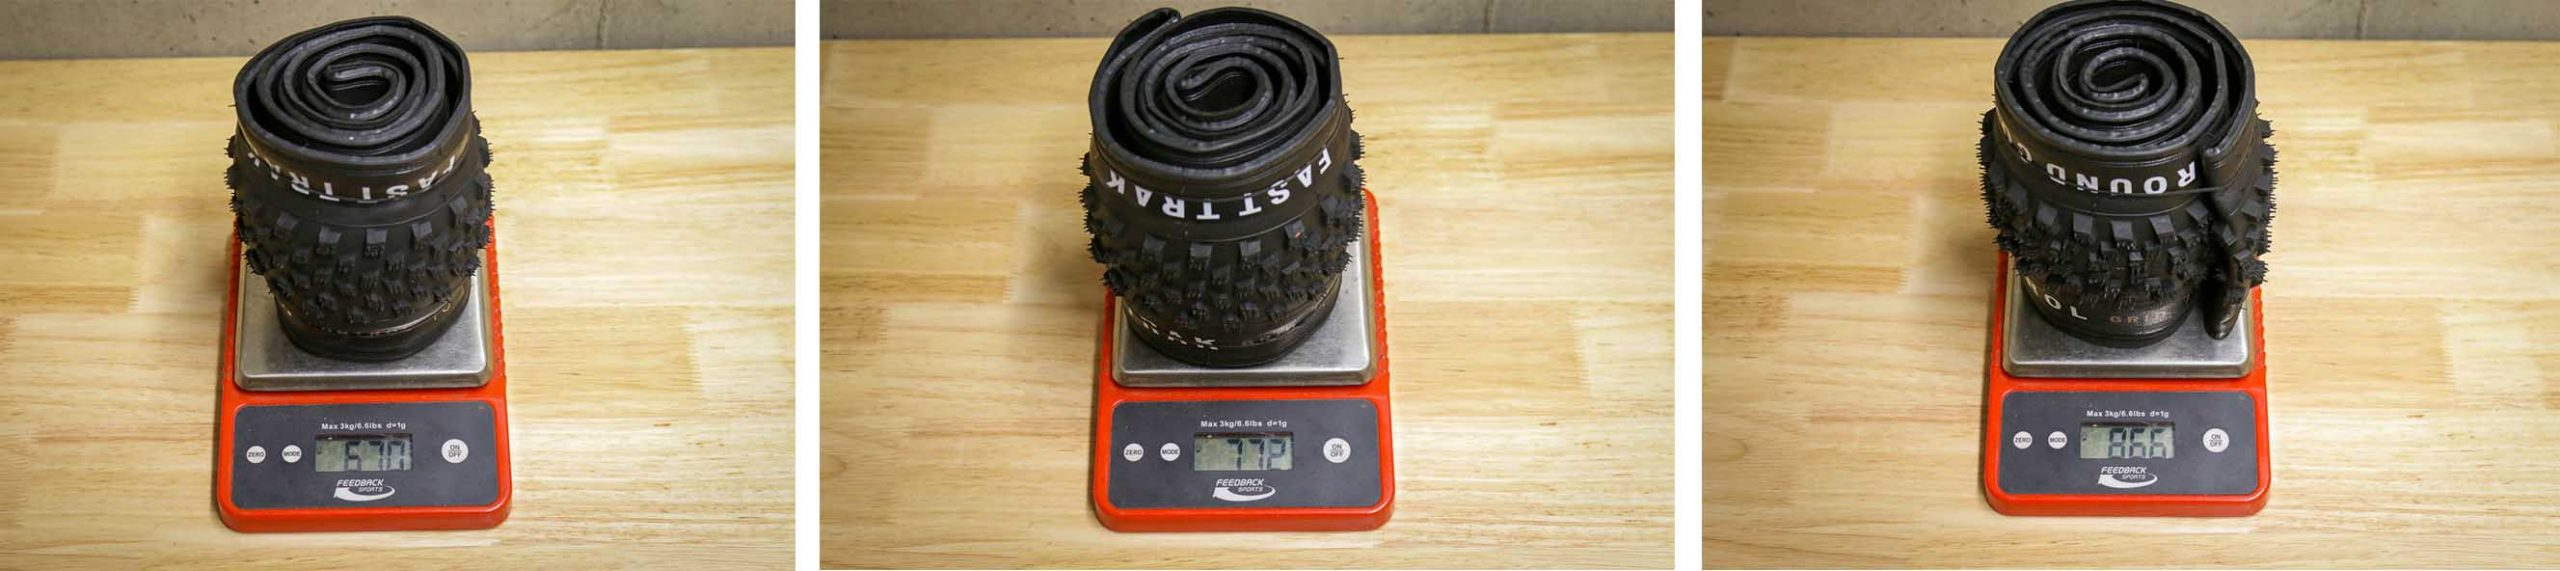 Specialized XC tire actual weight